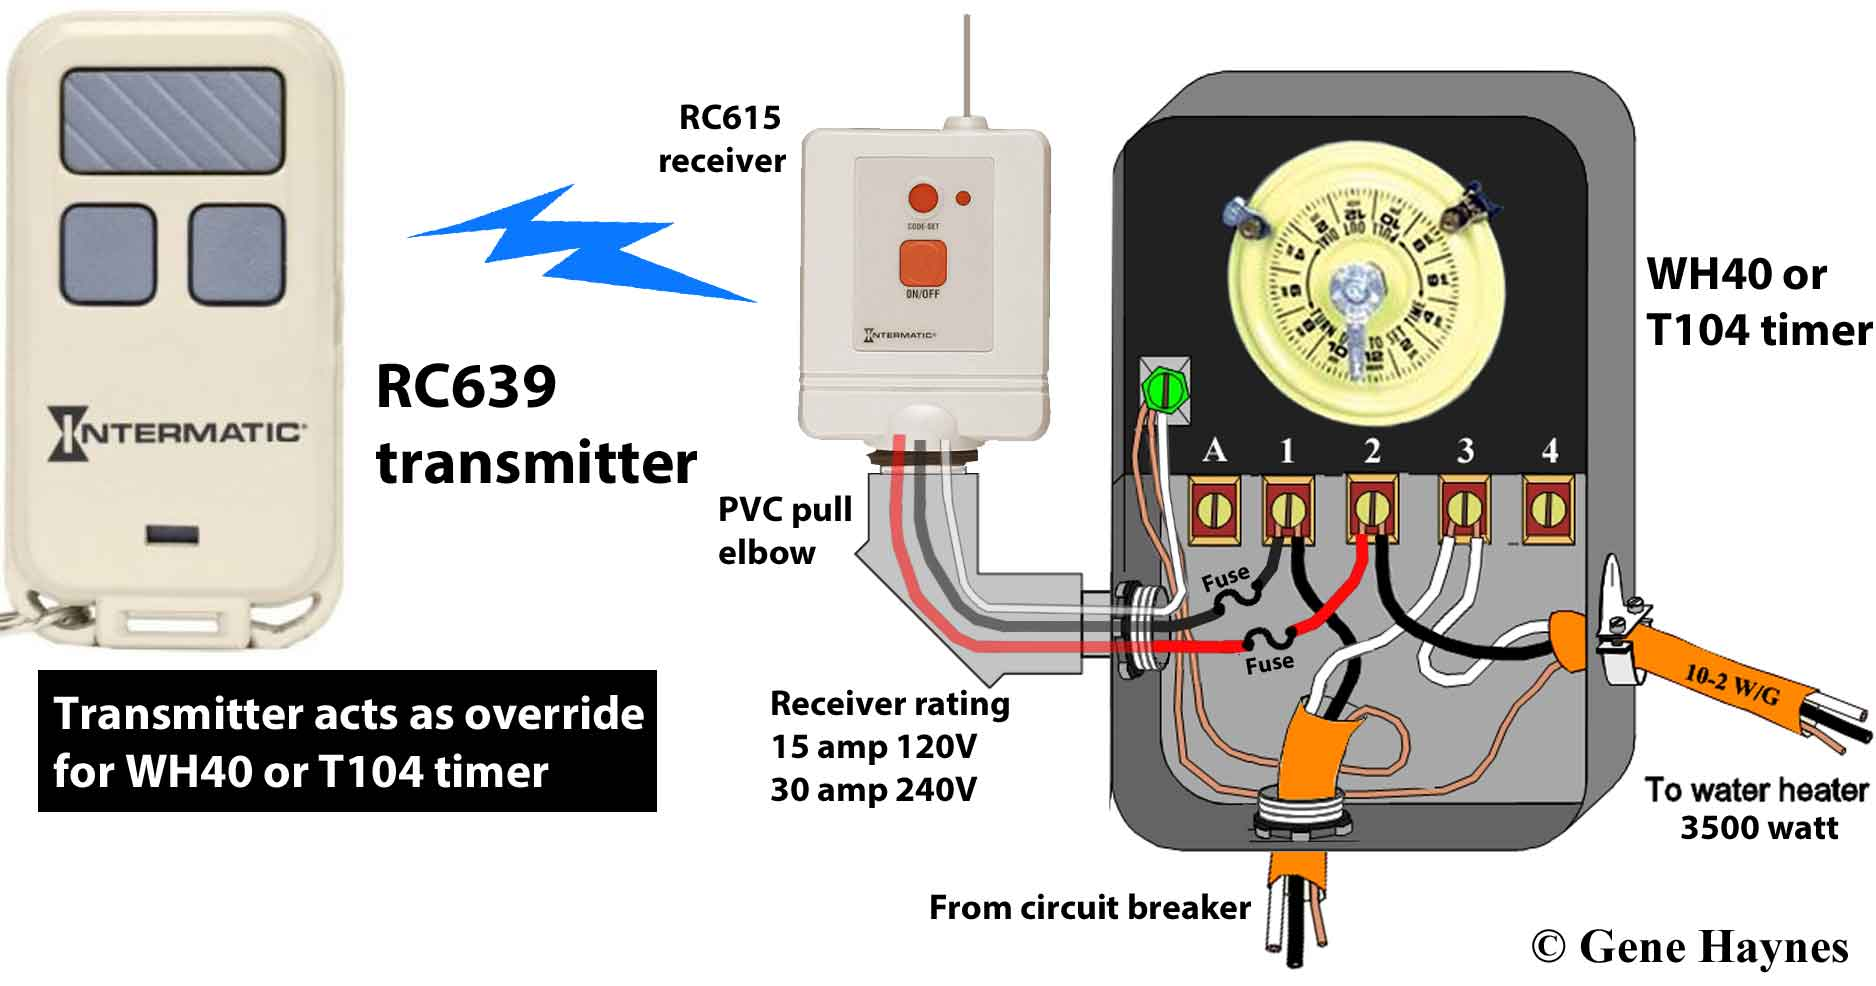 hight resolution of how to wire intermatic t104 and t103 and t101 timersrc939 transmitter rc613 receiver wh40 or t104